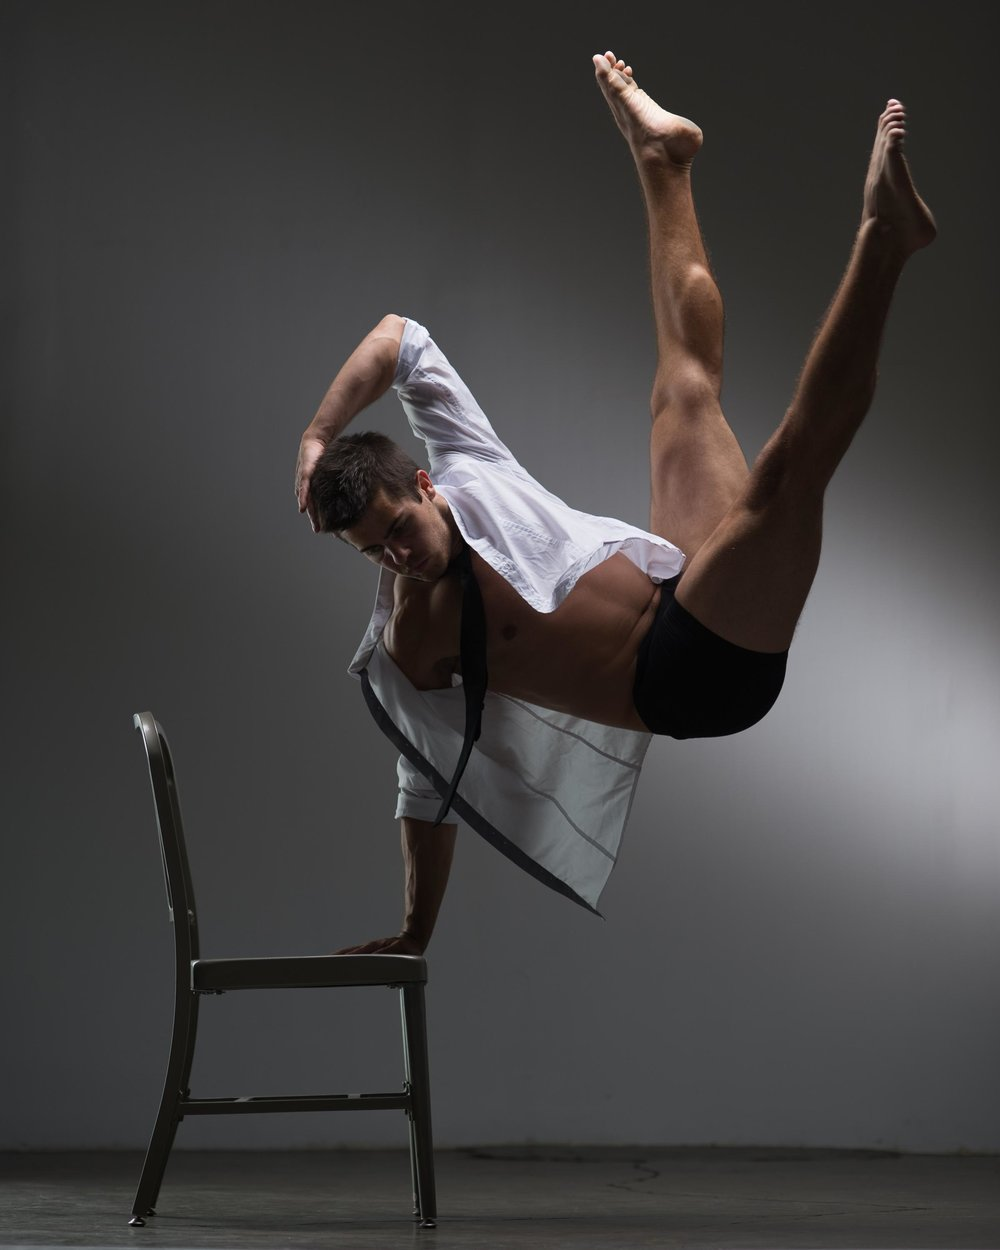 Chair Split - Cameron Gilliam.jpg